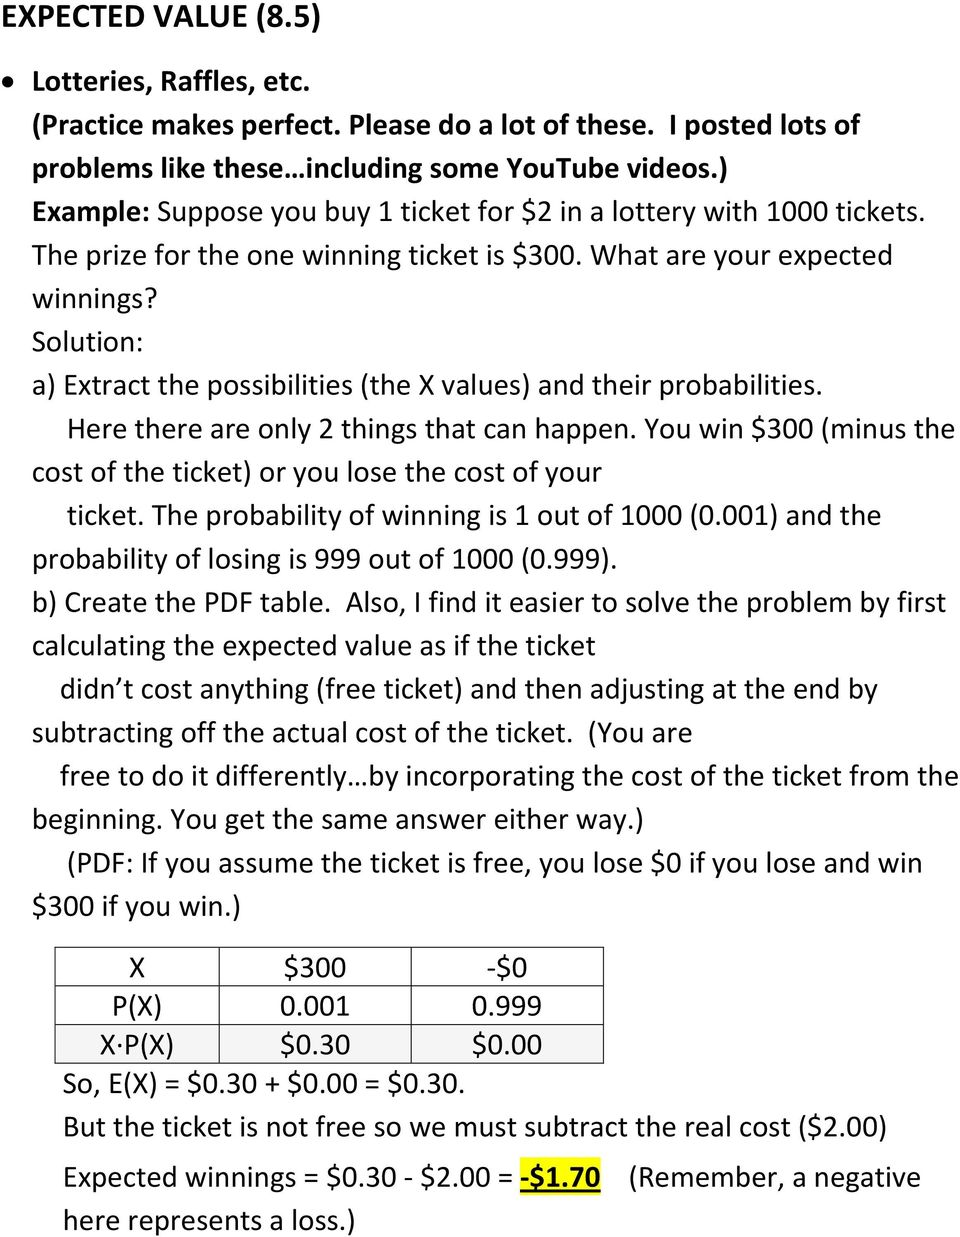 a) Extract the possibilities (the X values) and their probabilities. Here there are only 2 things that can happen. You win $300 (minus the cost of the ticket) or you lose the cost of your ticket.